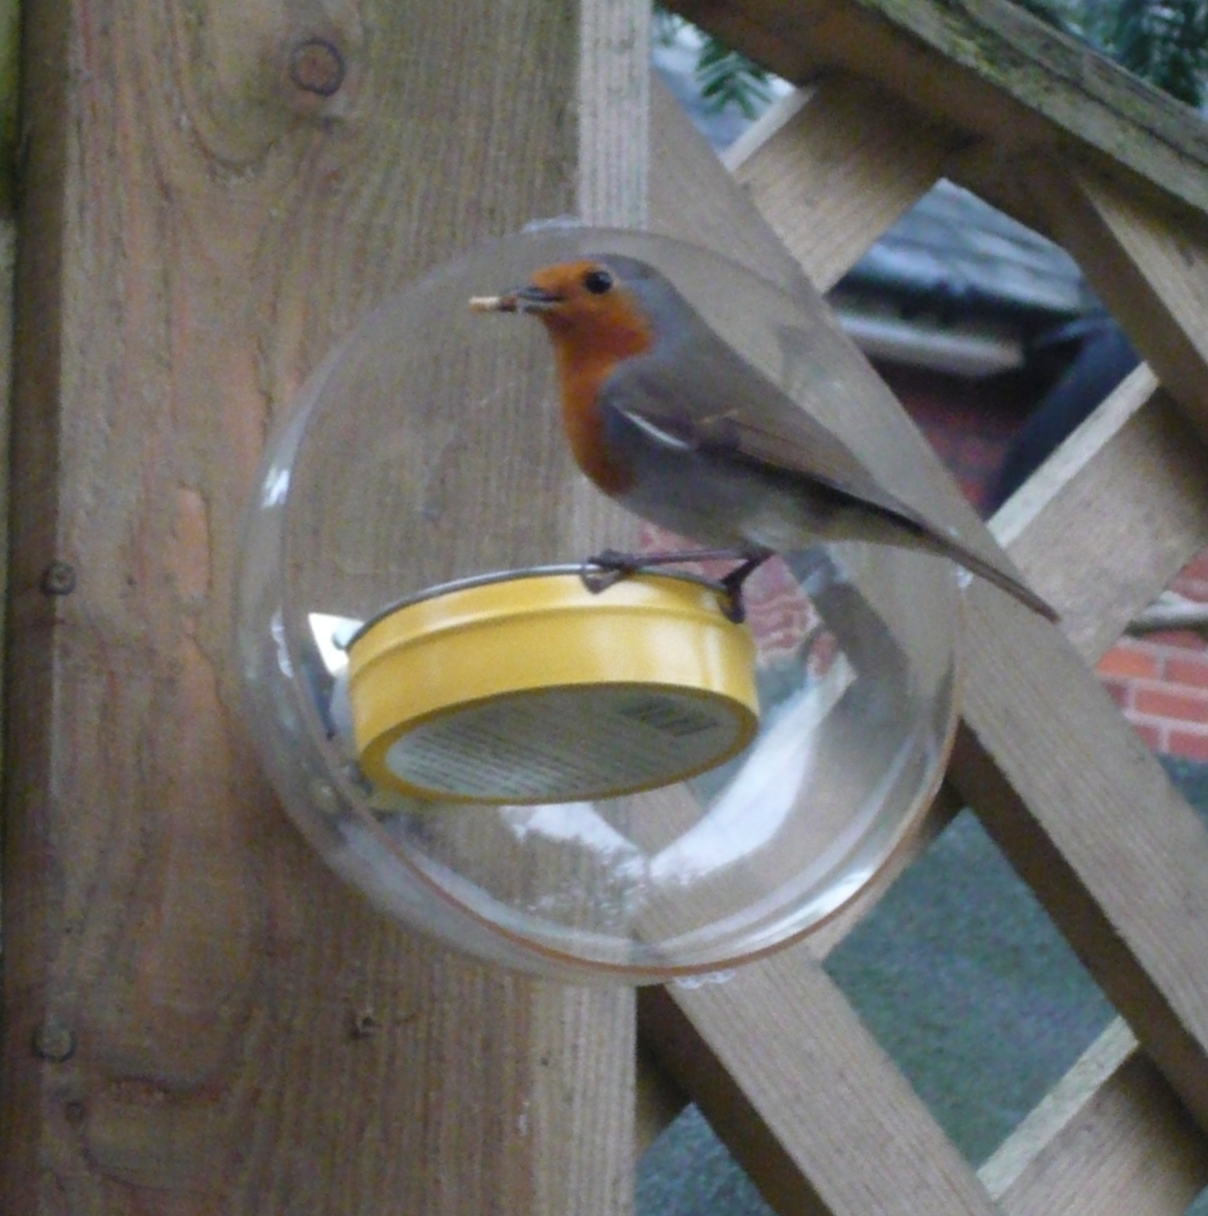 Small simple horizontally mounted squirrel resistant/proof bird feeder that requires no specialist tools to make